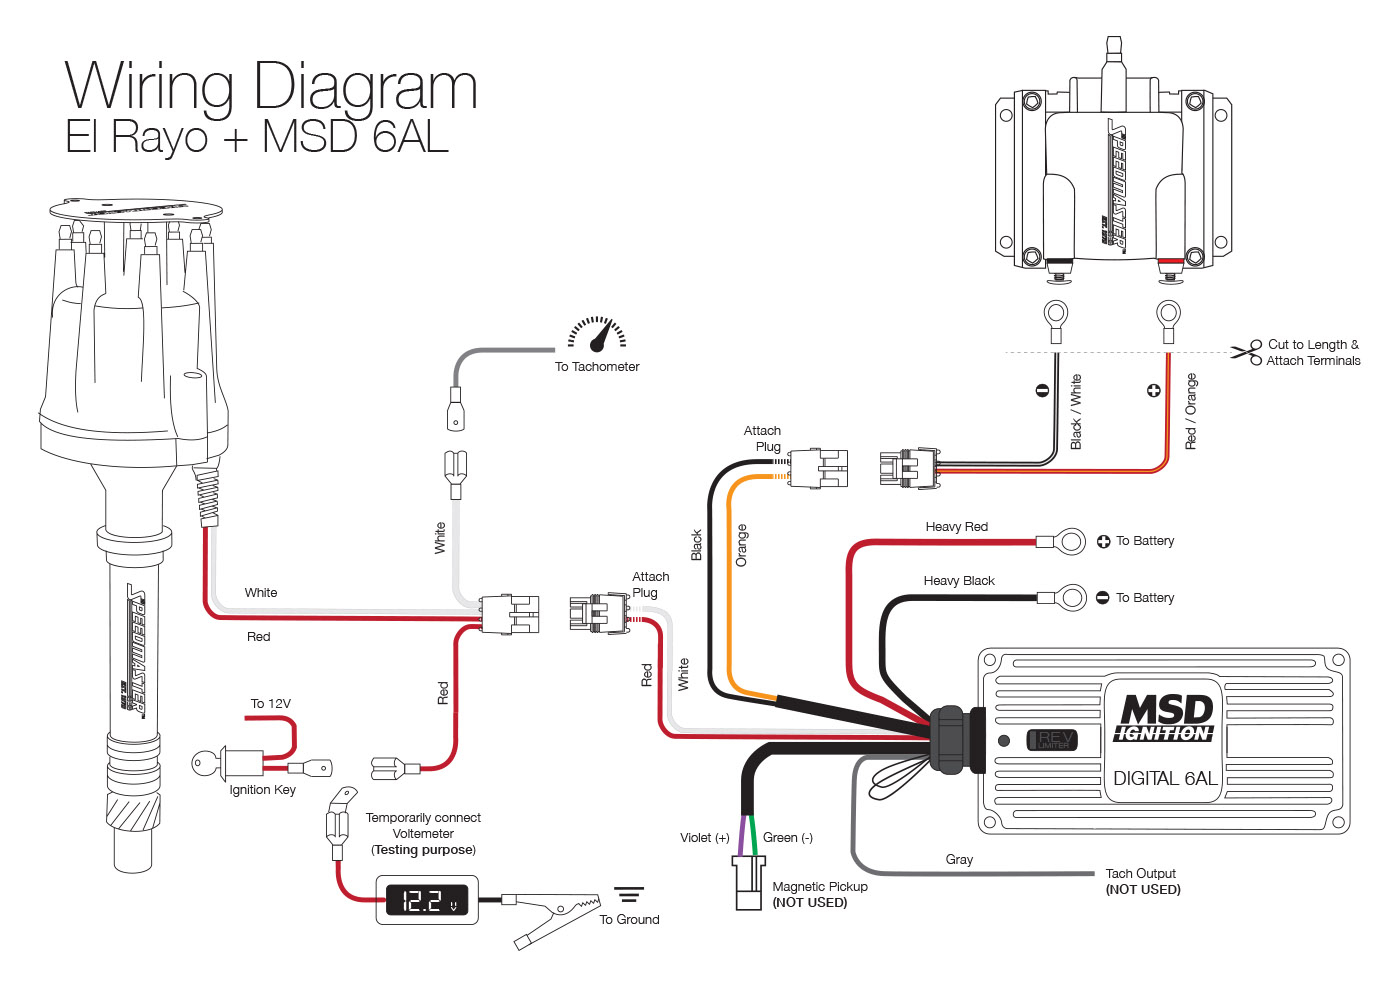 Distributor Wiring Diagram - Data Wiring Diagram Today - Distributor Wiring Diagram